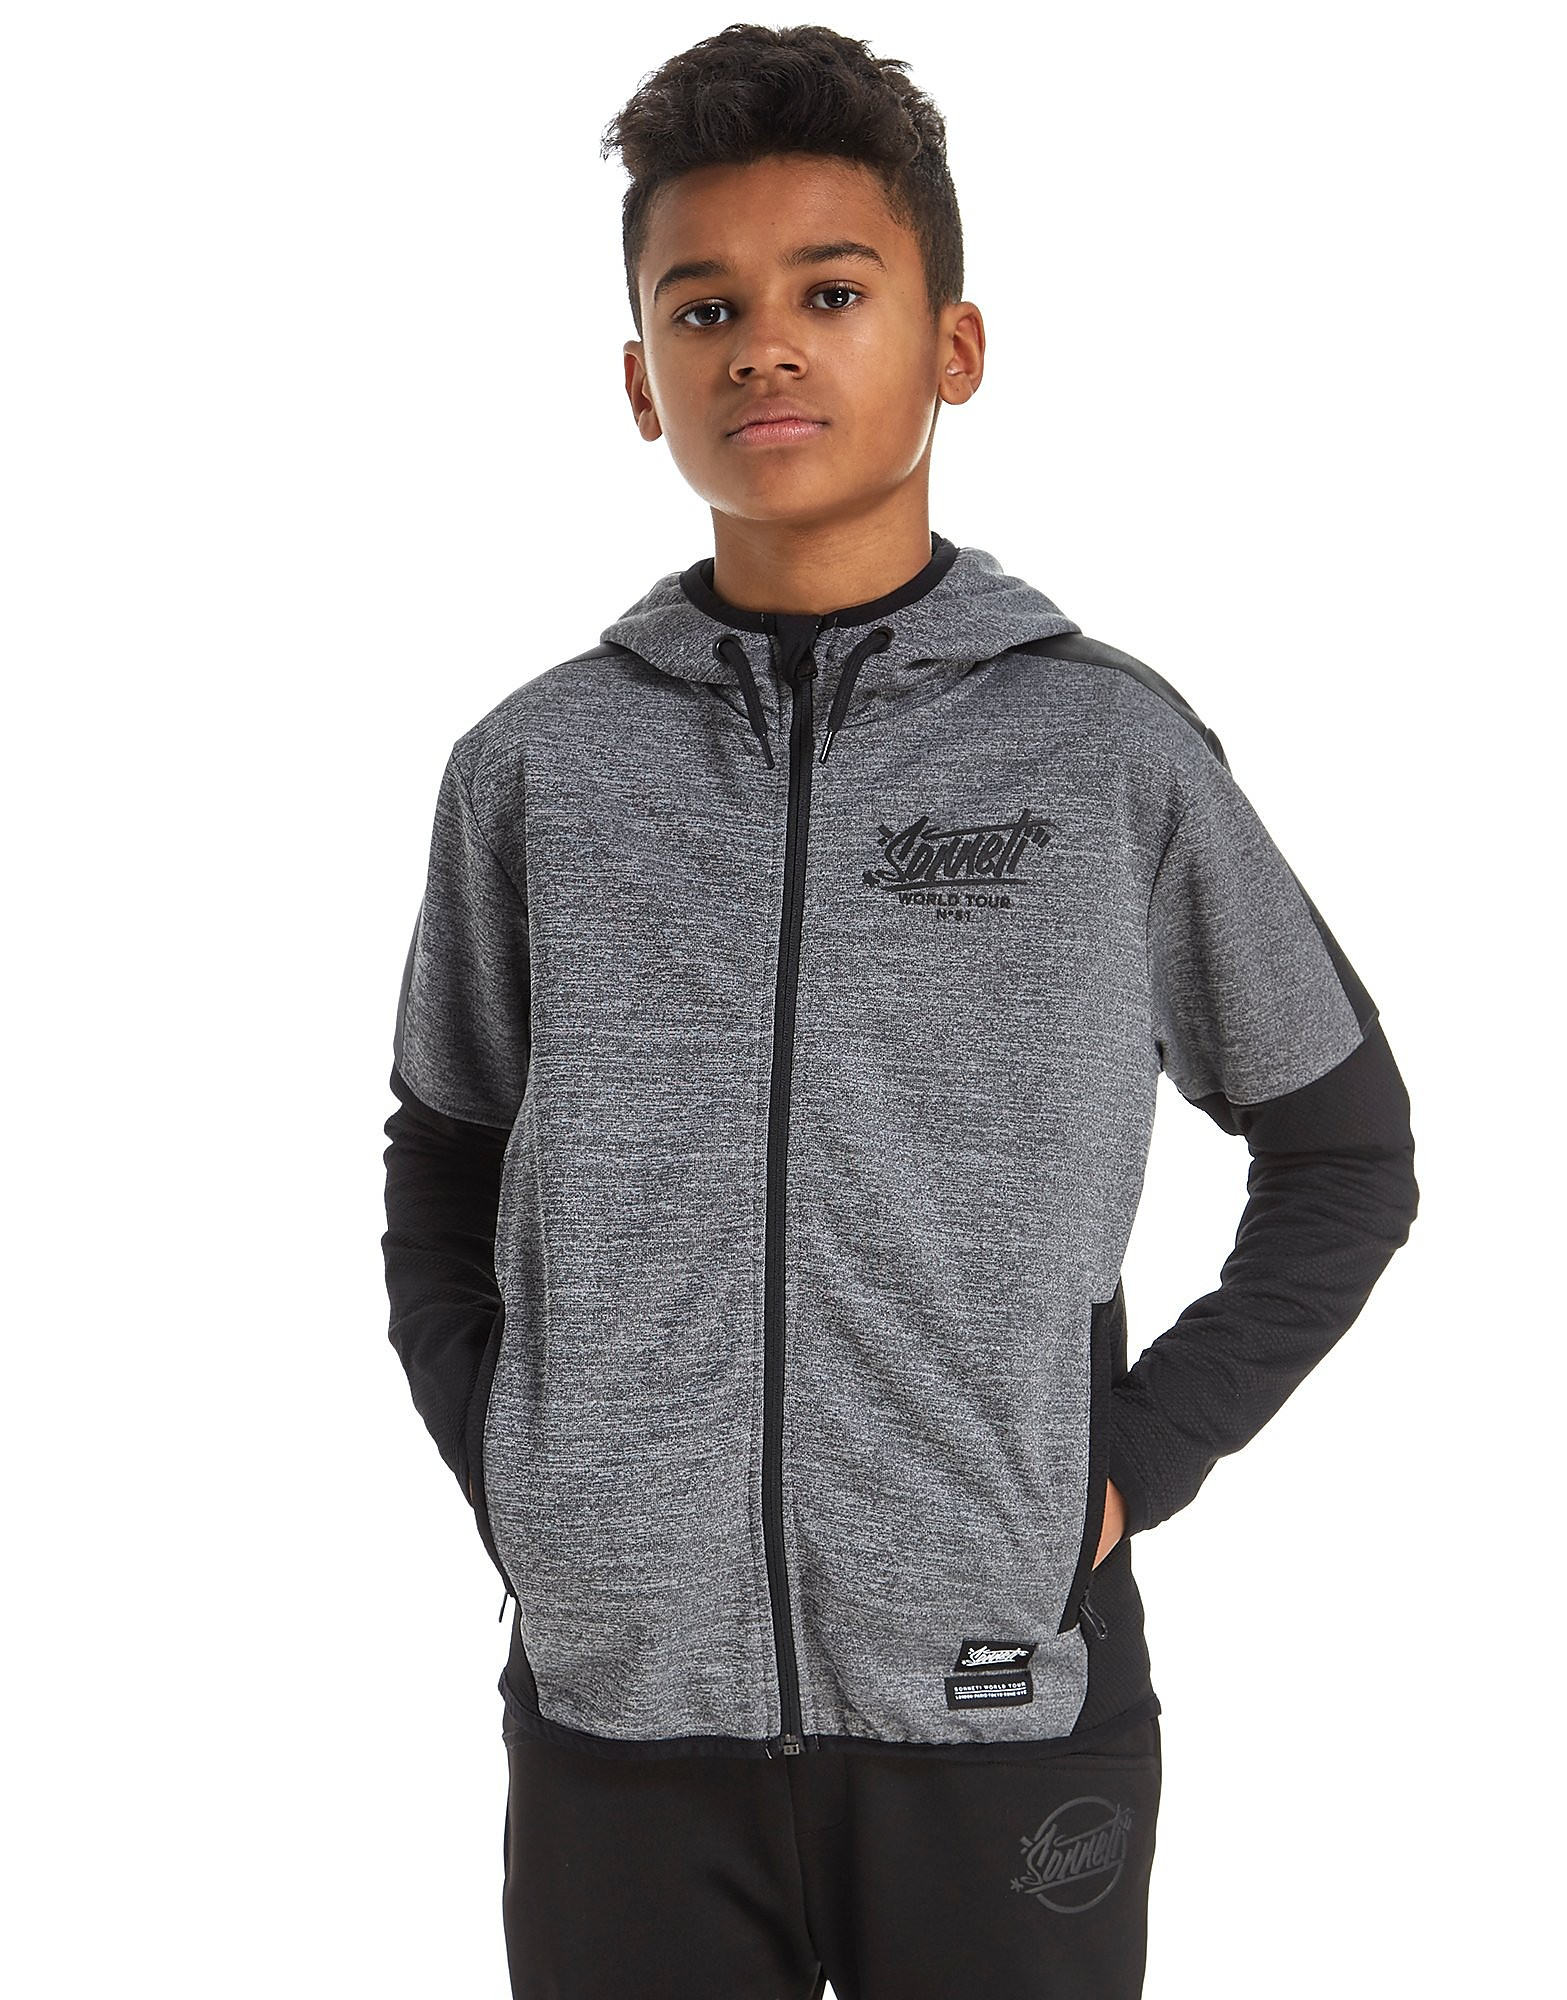 Sonneti Silicon Zip Up Hoody Junior